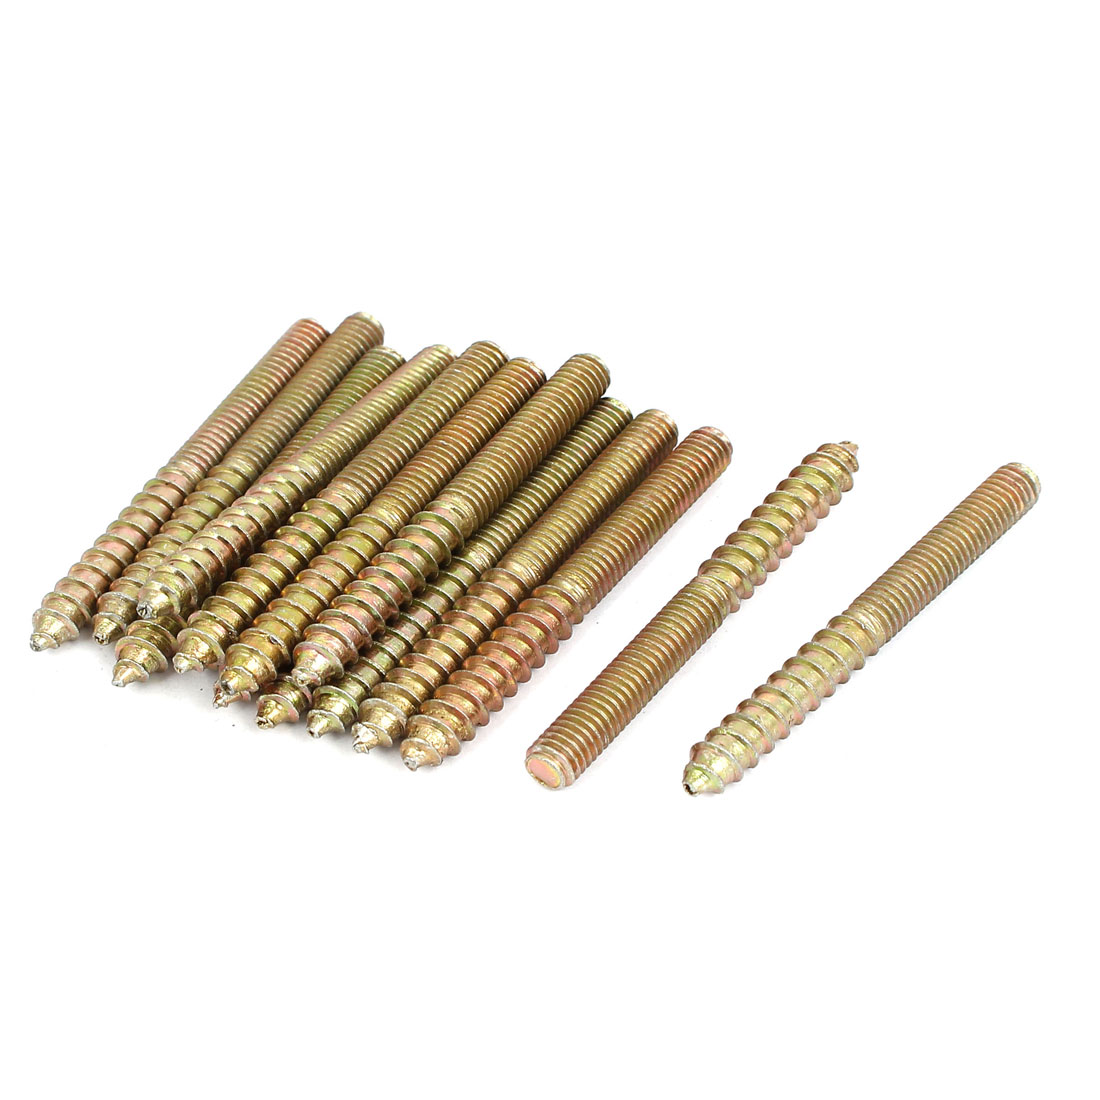 Unique Bargains M6x59mm Double Ended Threaded Self Tapping Wood Screw Rod Bar Bolt Stud